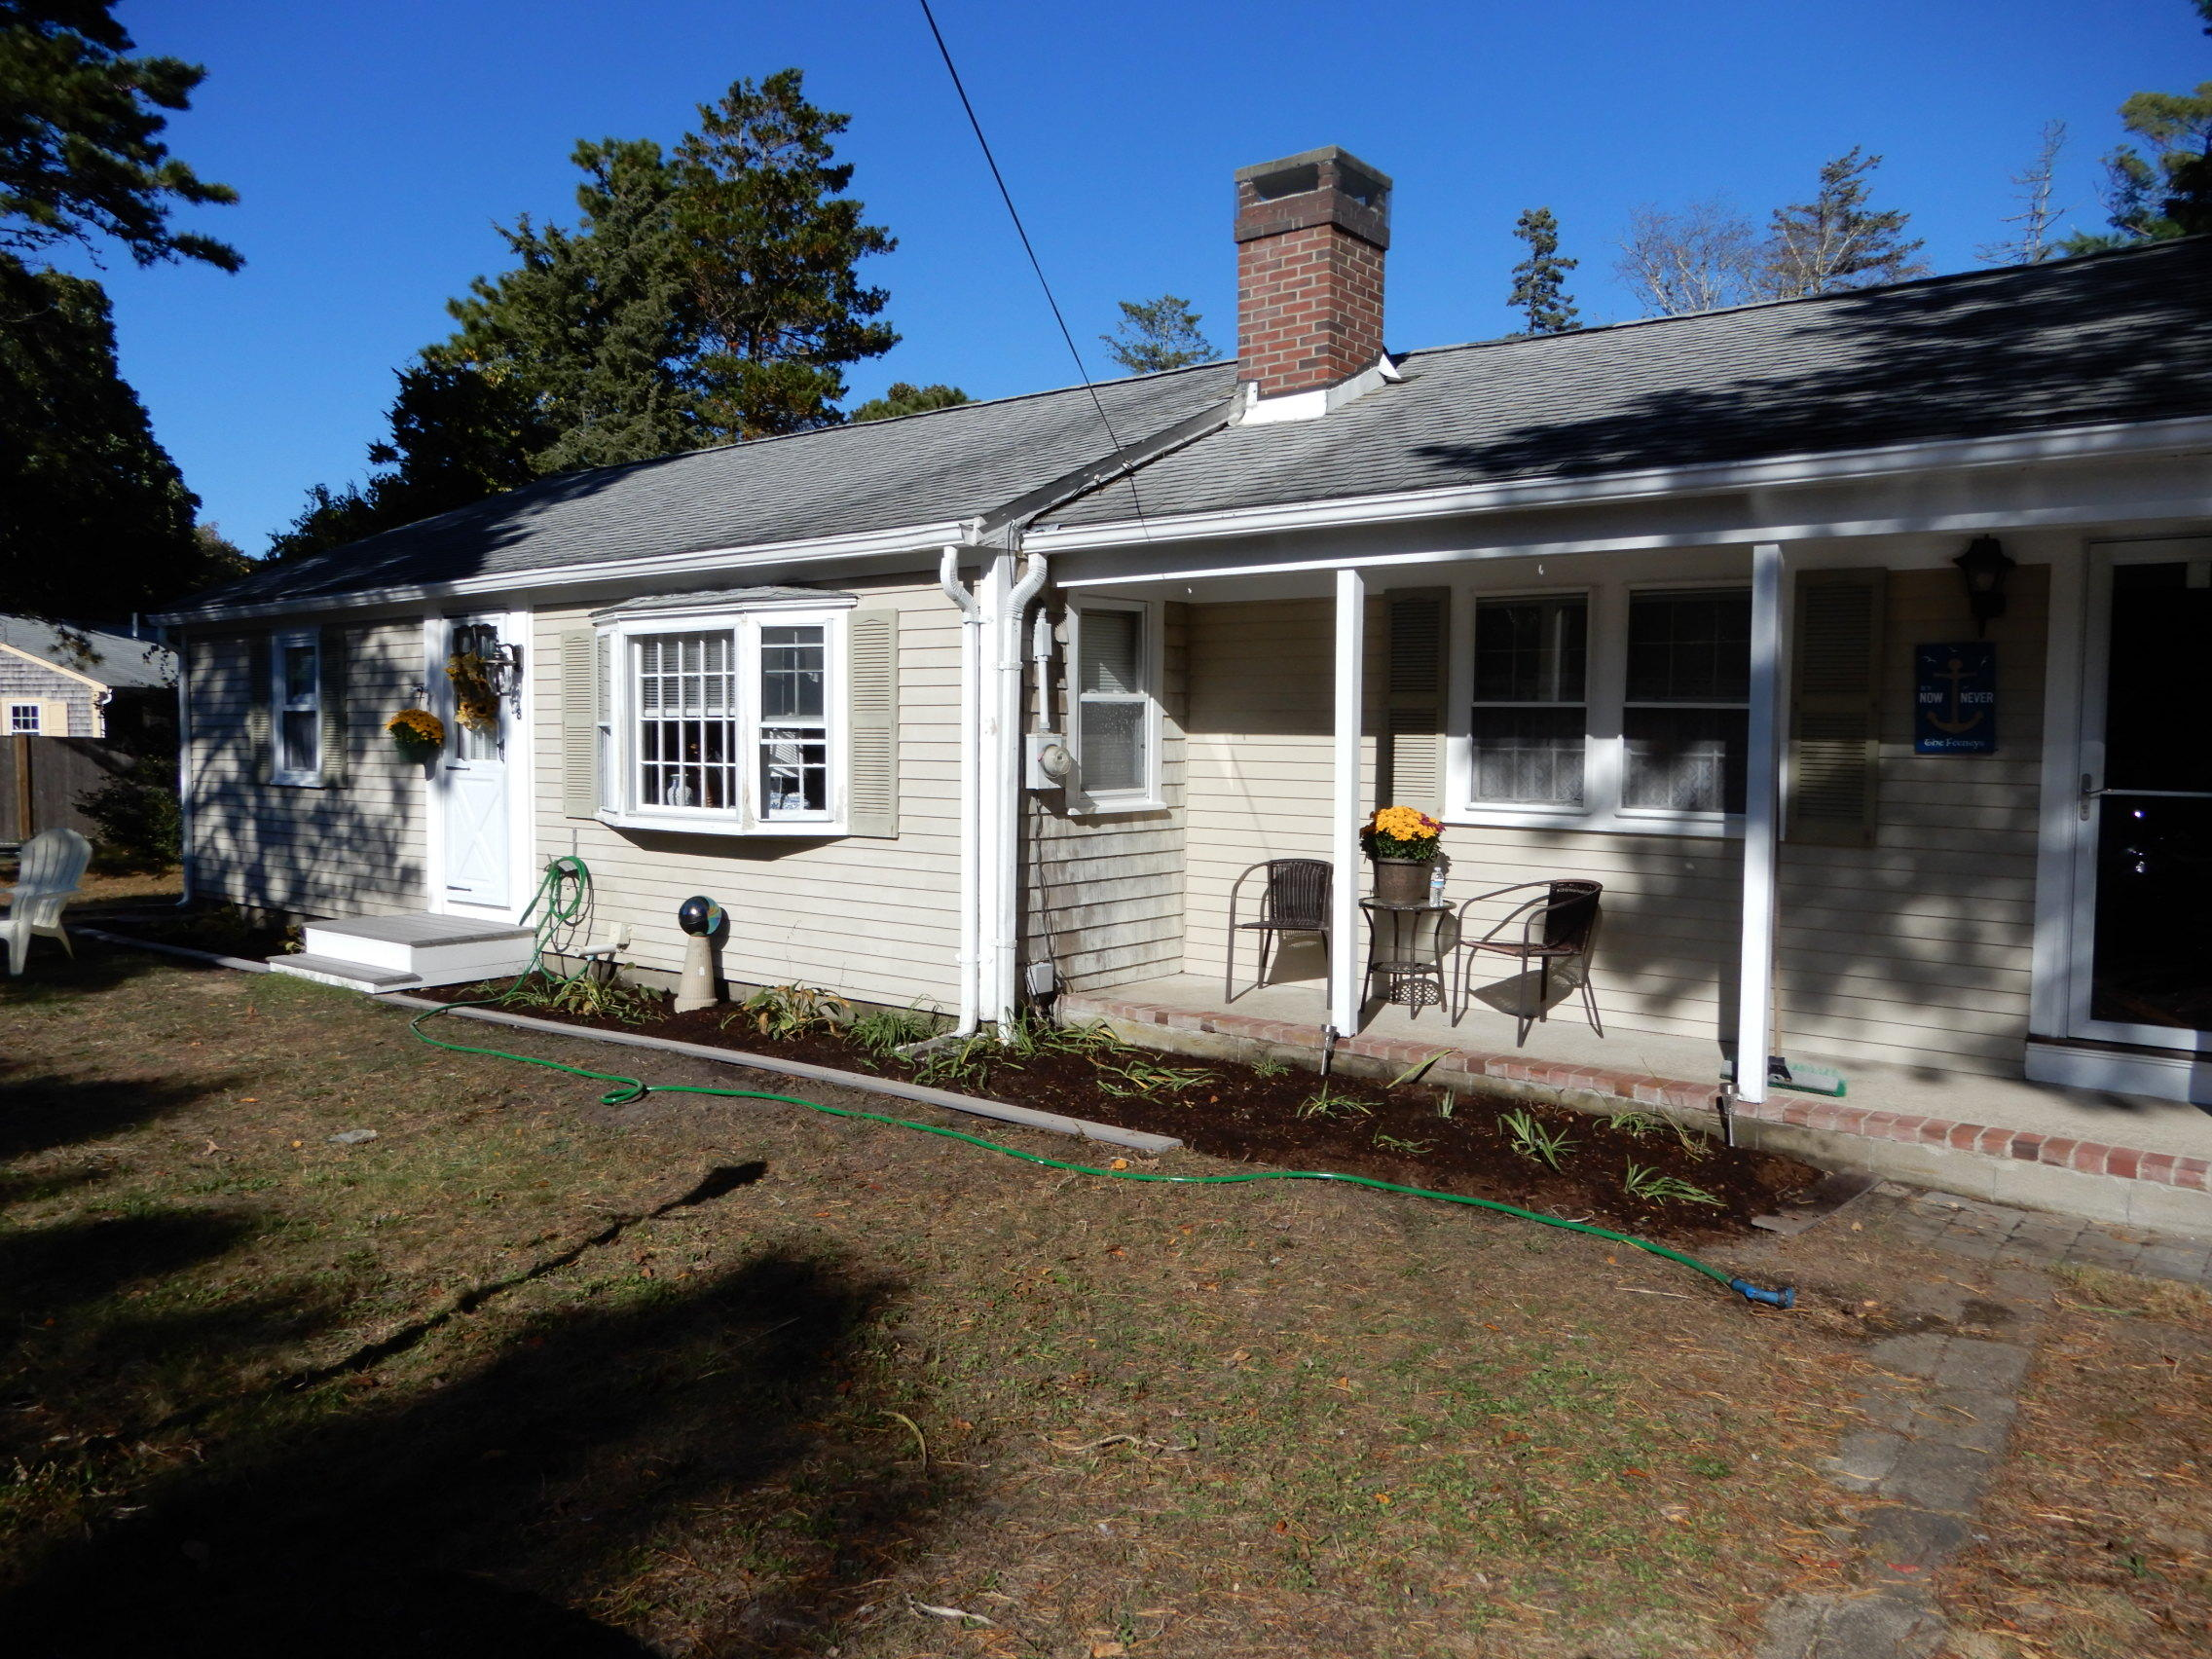 8 Pamet Road, West Yarmouth MA, 02673 details